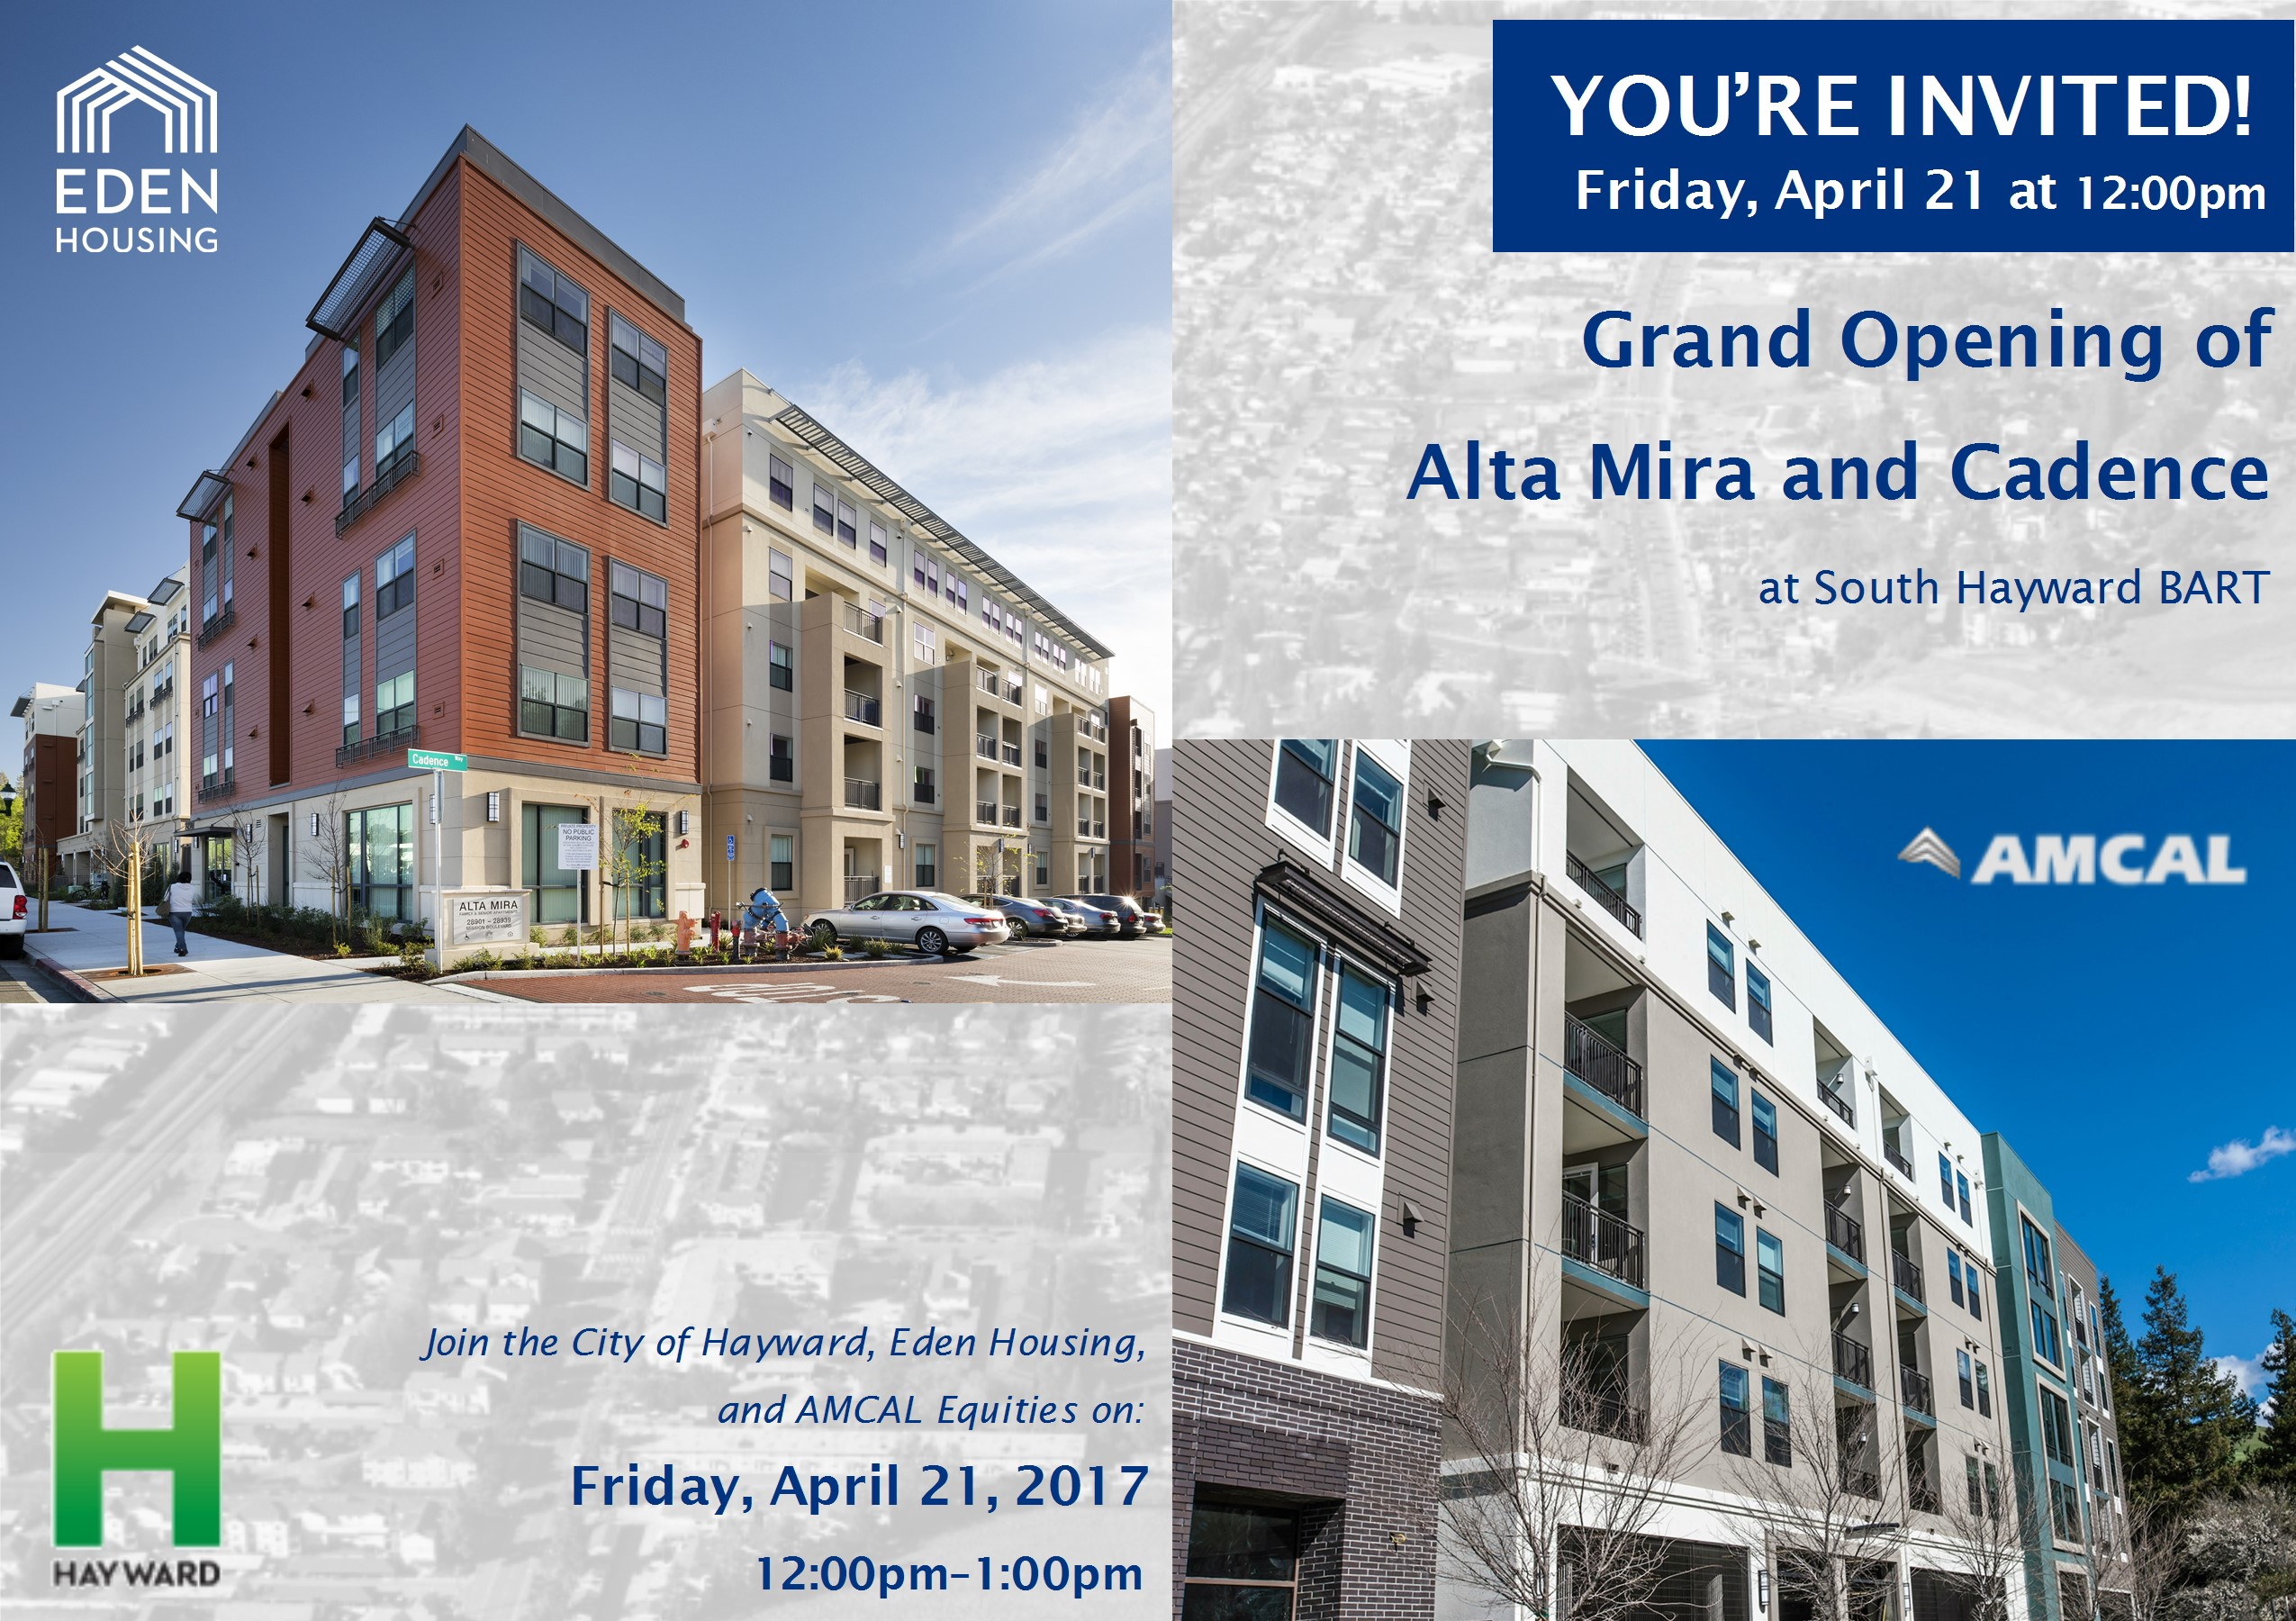 Grand Opening of Alta Mira and Cadence